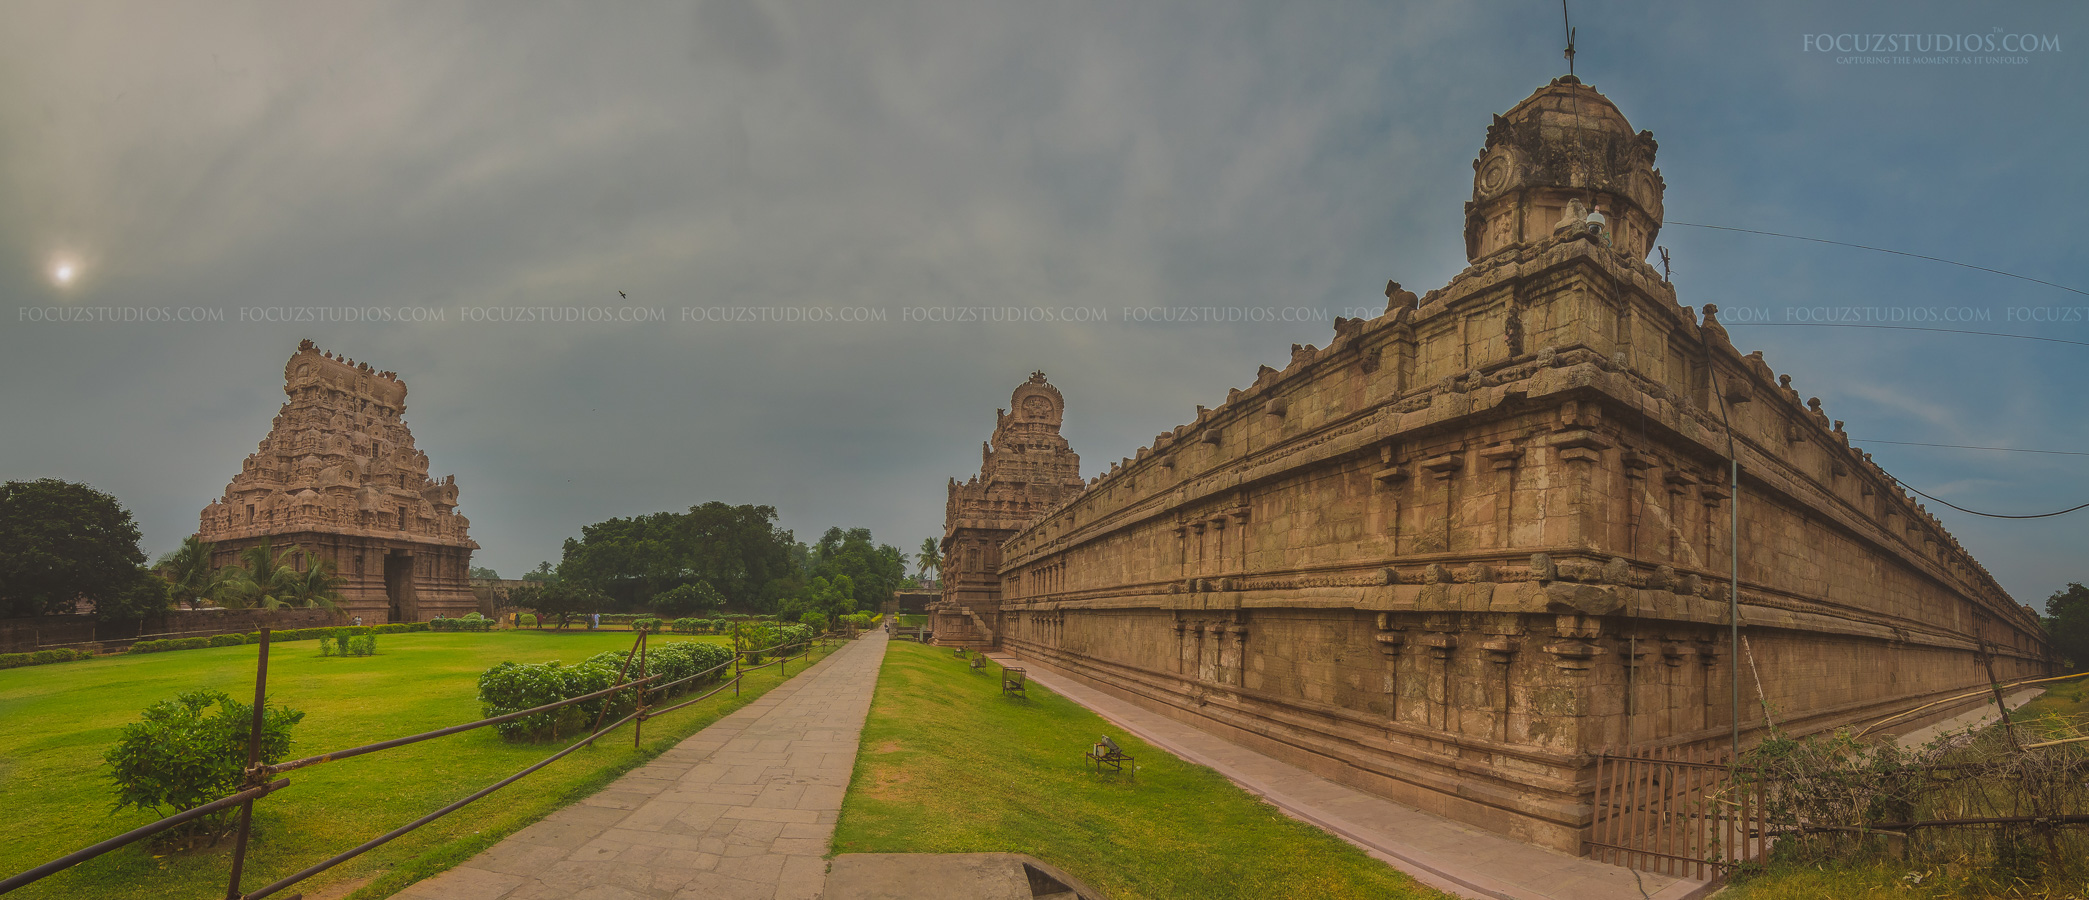 thanjavur temple photo panorama